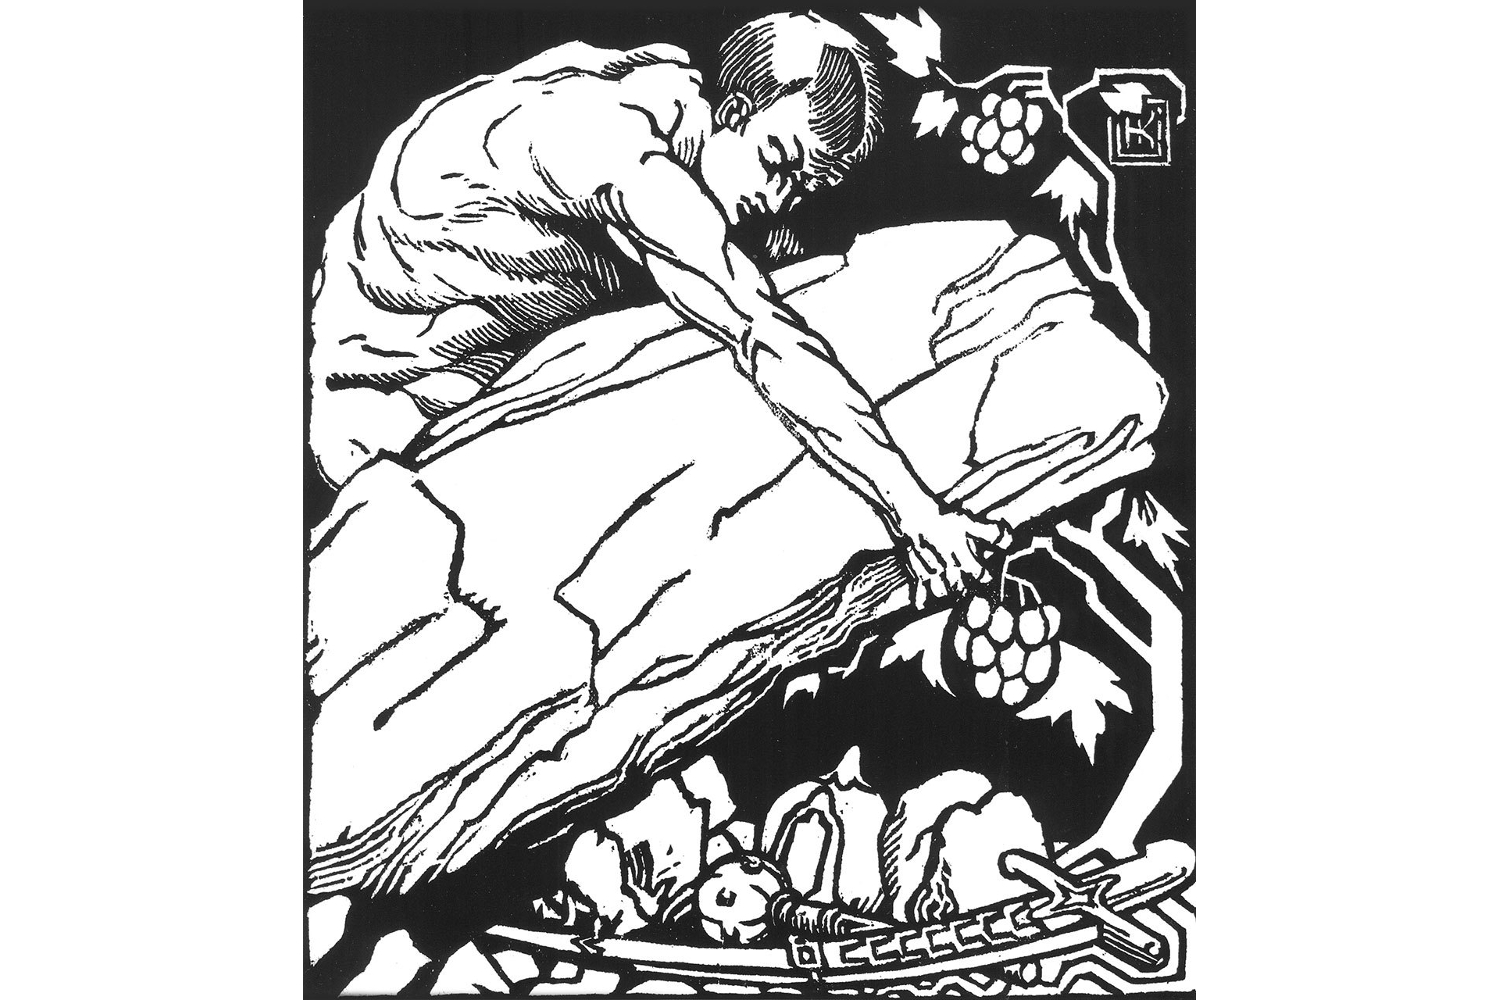 Linocut by Olena Kulchytska. Theseus picking up a sword (symbolizing state power) prepared for the 10th anniversary of the November 1918 events. Credits: Nadiya Kinash